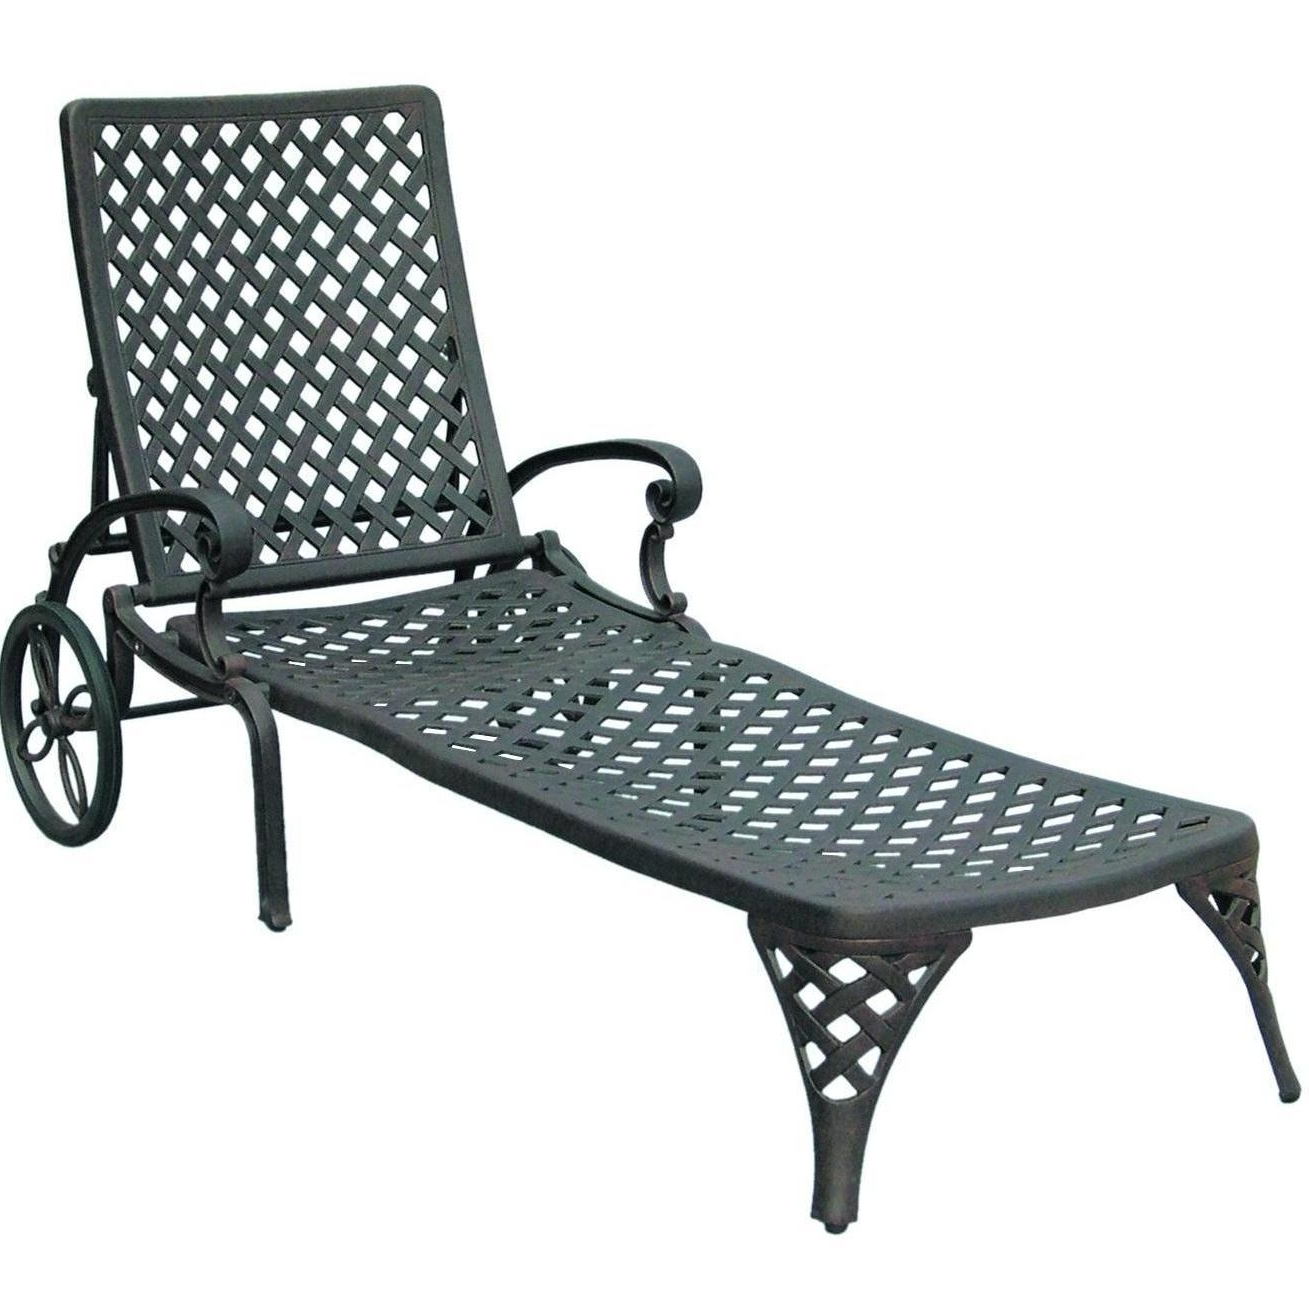 Wrought Iron Chaise Lounges Throughout Latest Darlee Nassau Cast Aluminum Patio Chaise Lounge : Ultimate Patio (View 7 of 15)